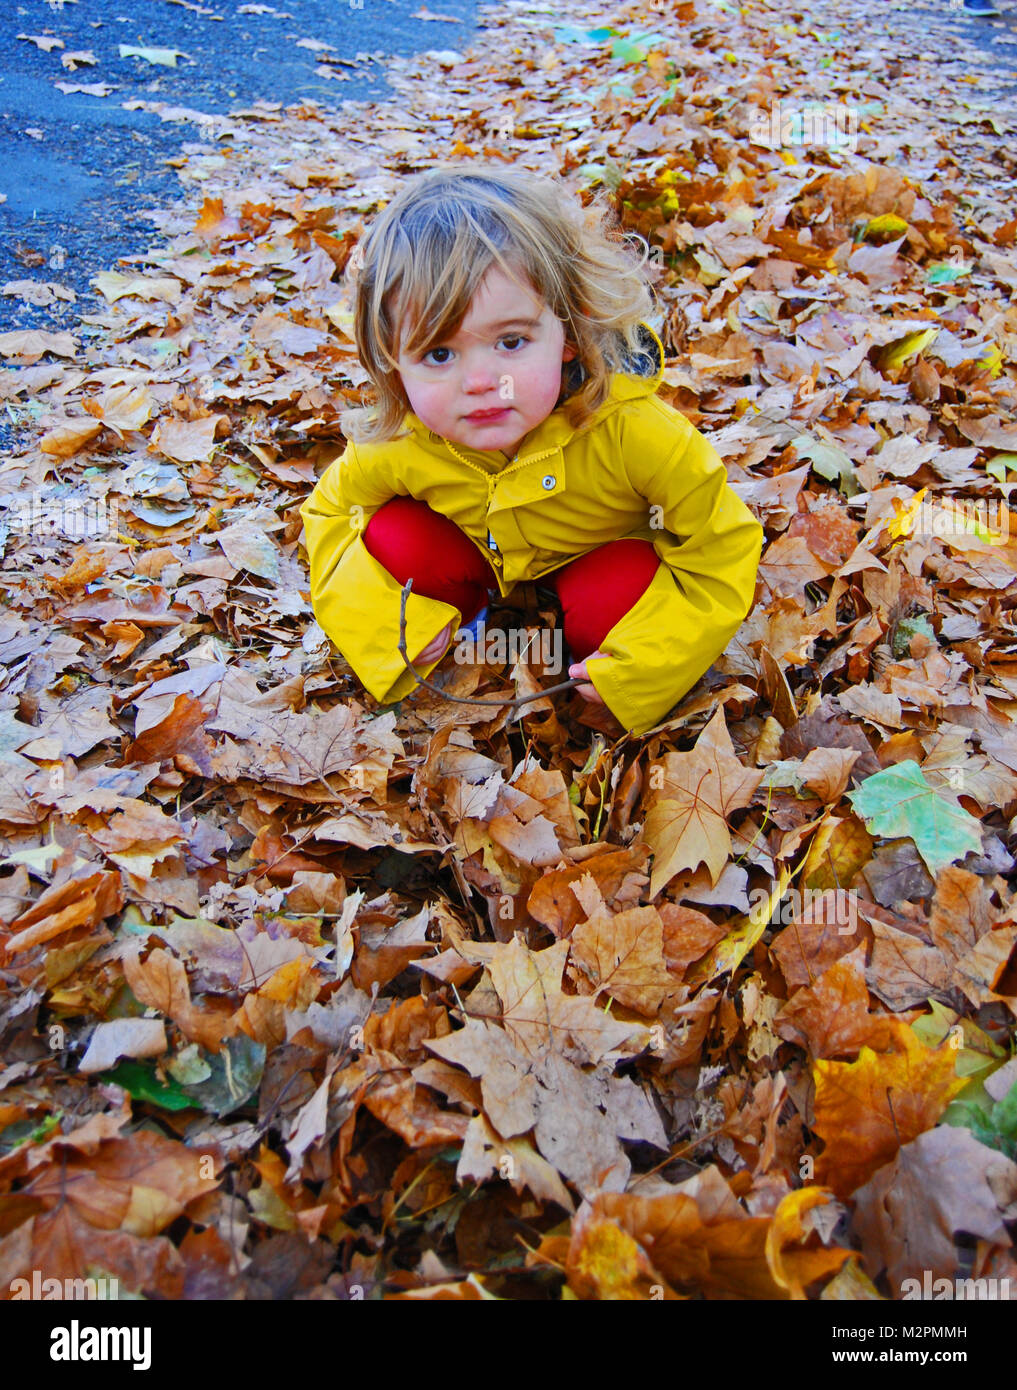 Child Crouching in Autumn Leaves - Stock Image